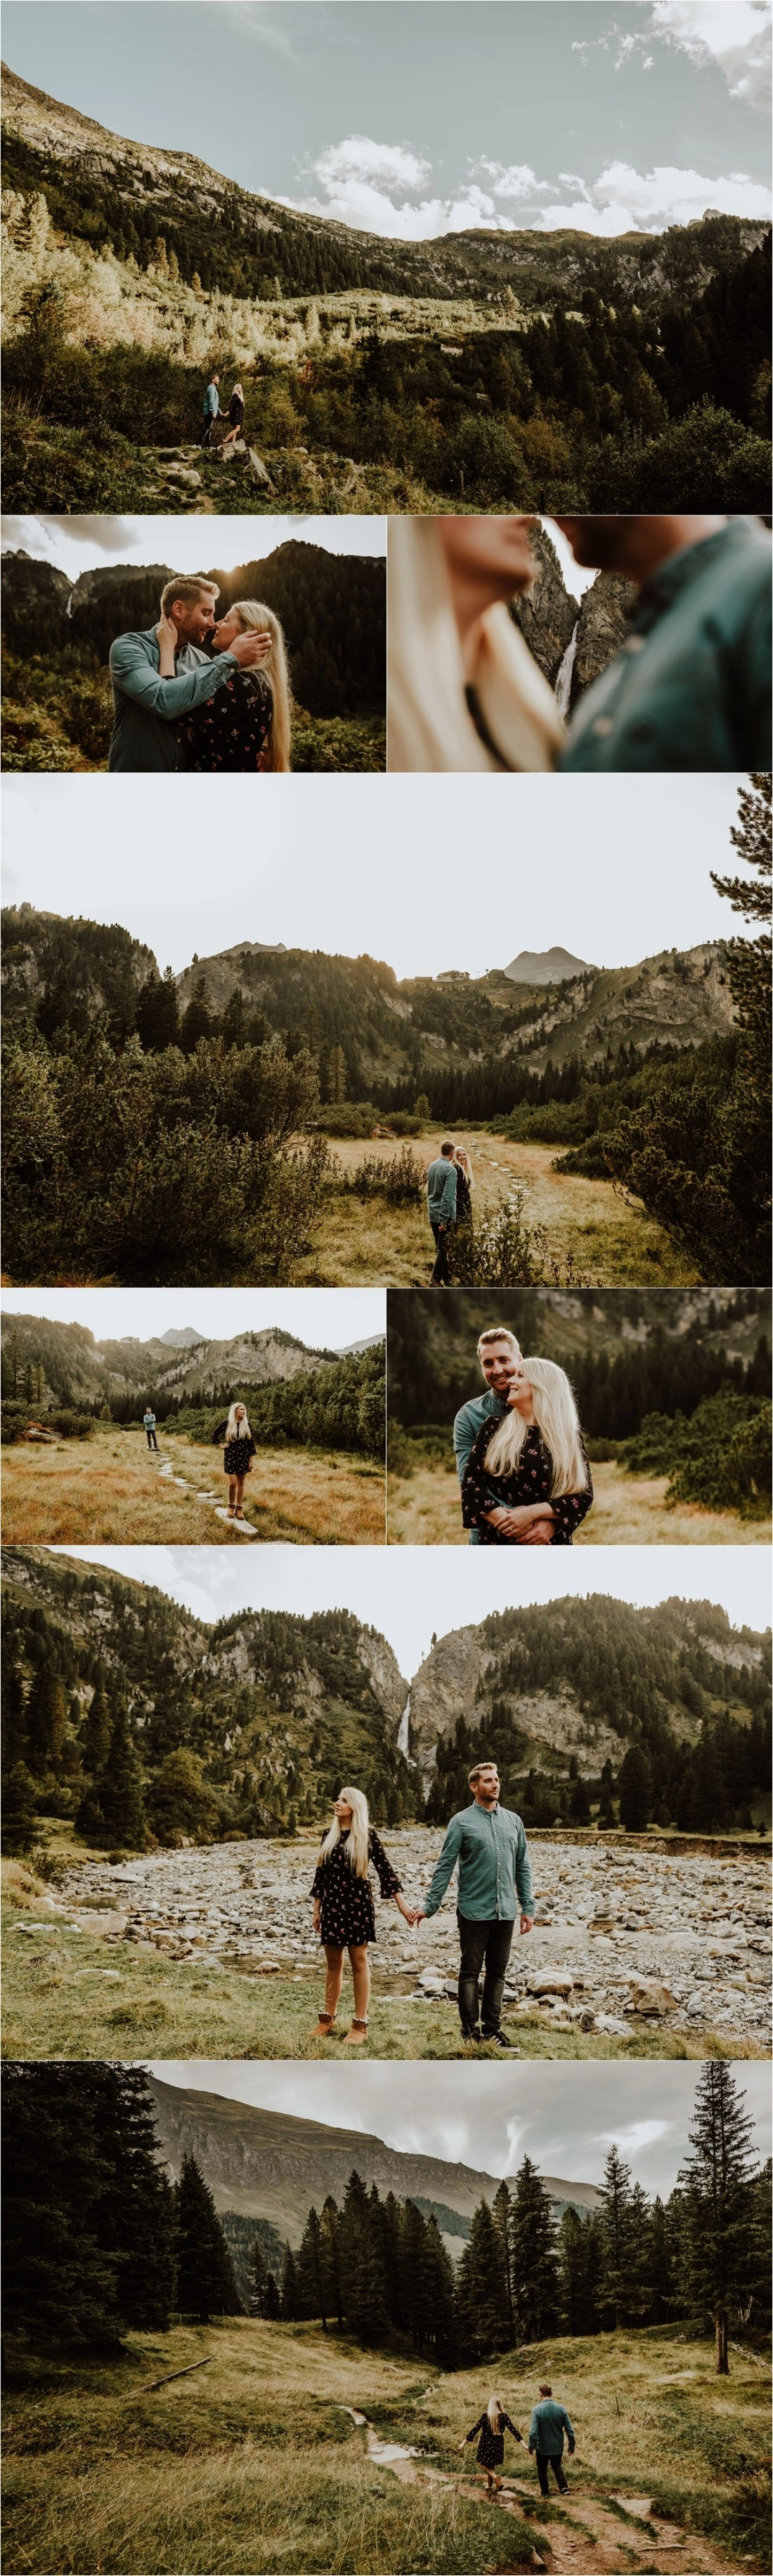 An adventure session in Hintertux engagement shoot at a waterfall by Wild Connections Photography